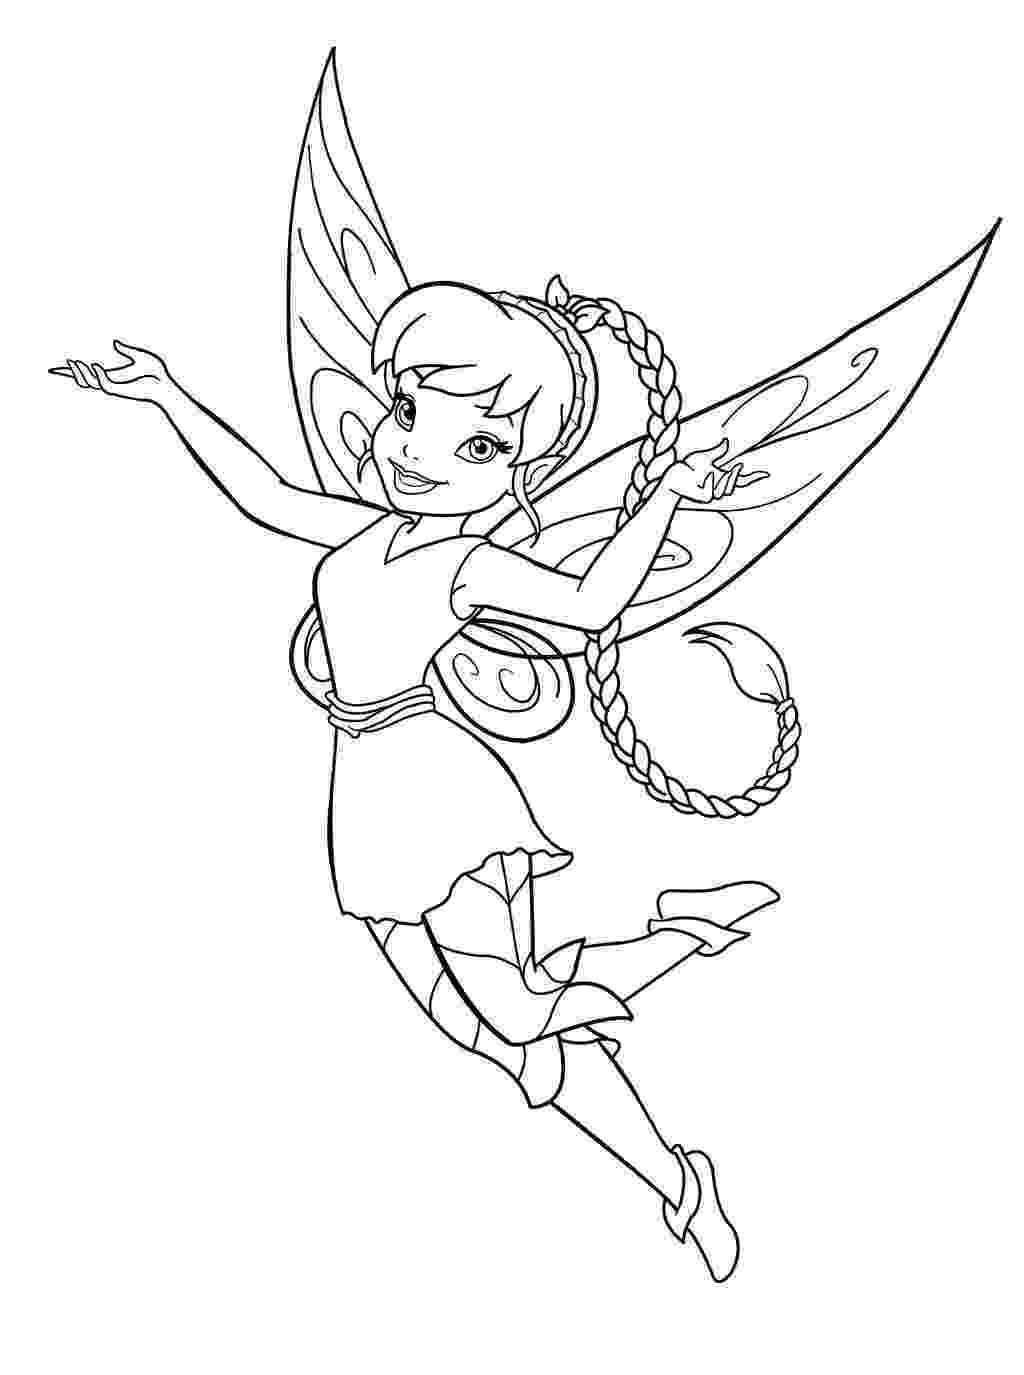 free printable pictures of fairies free printable fairy coloring pages for kids free of pictures fairies printable